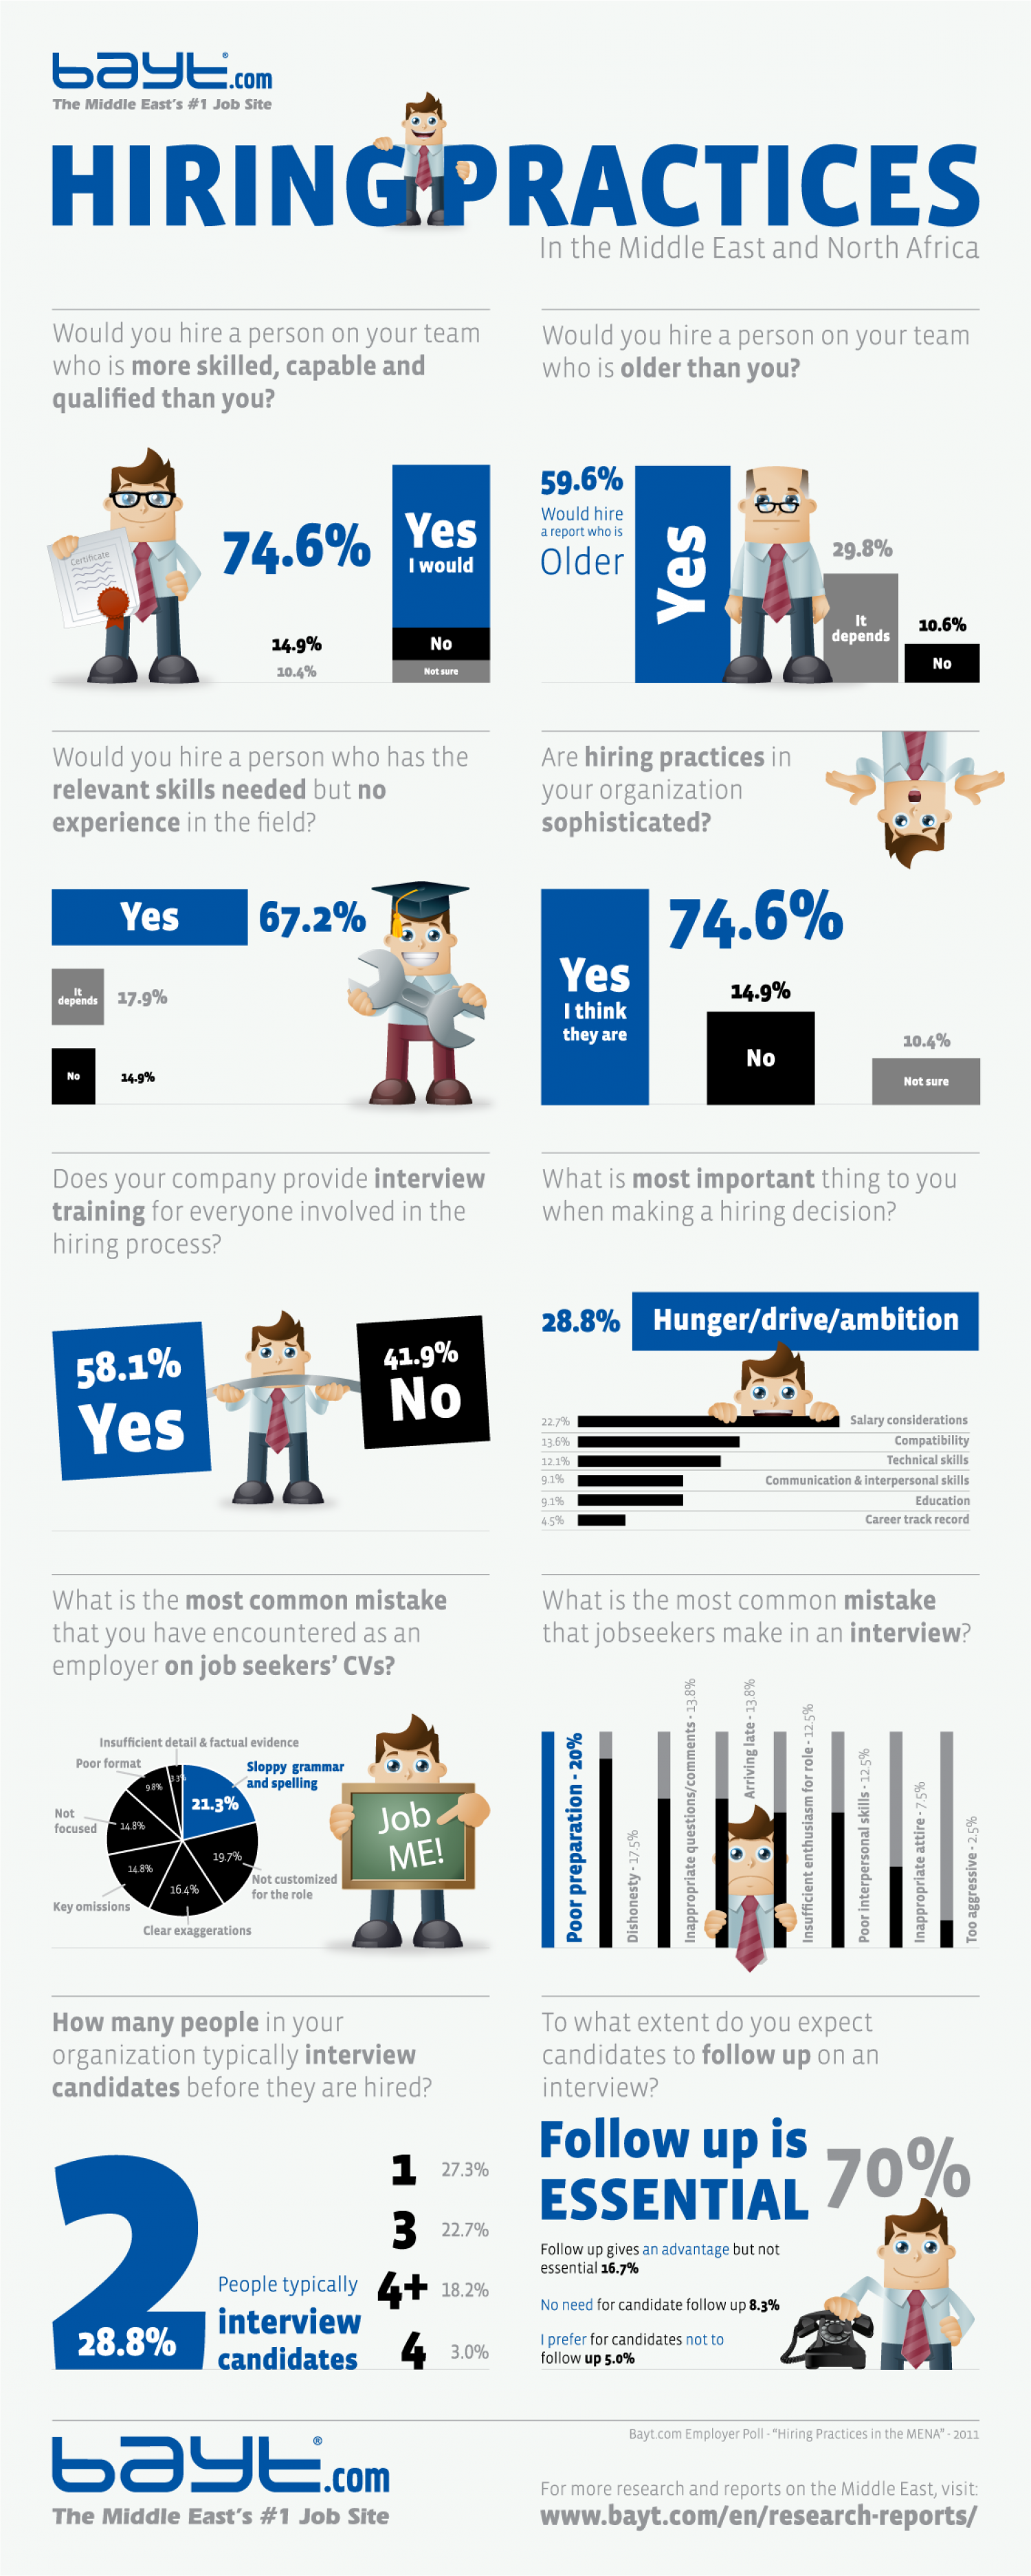 Hiring Practices in MENA Region Infographic